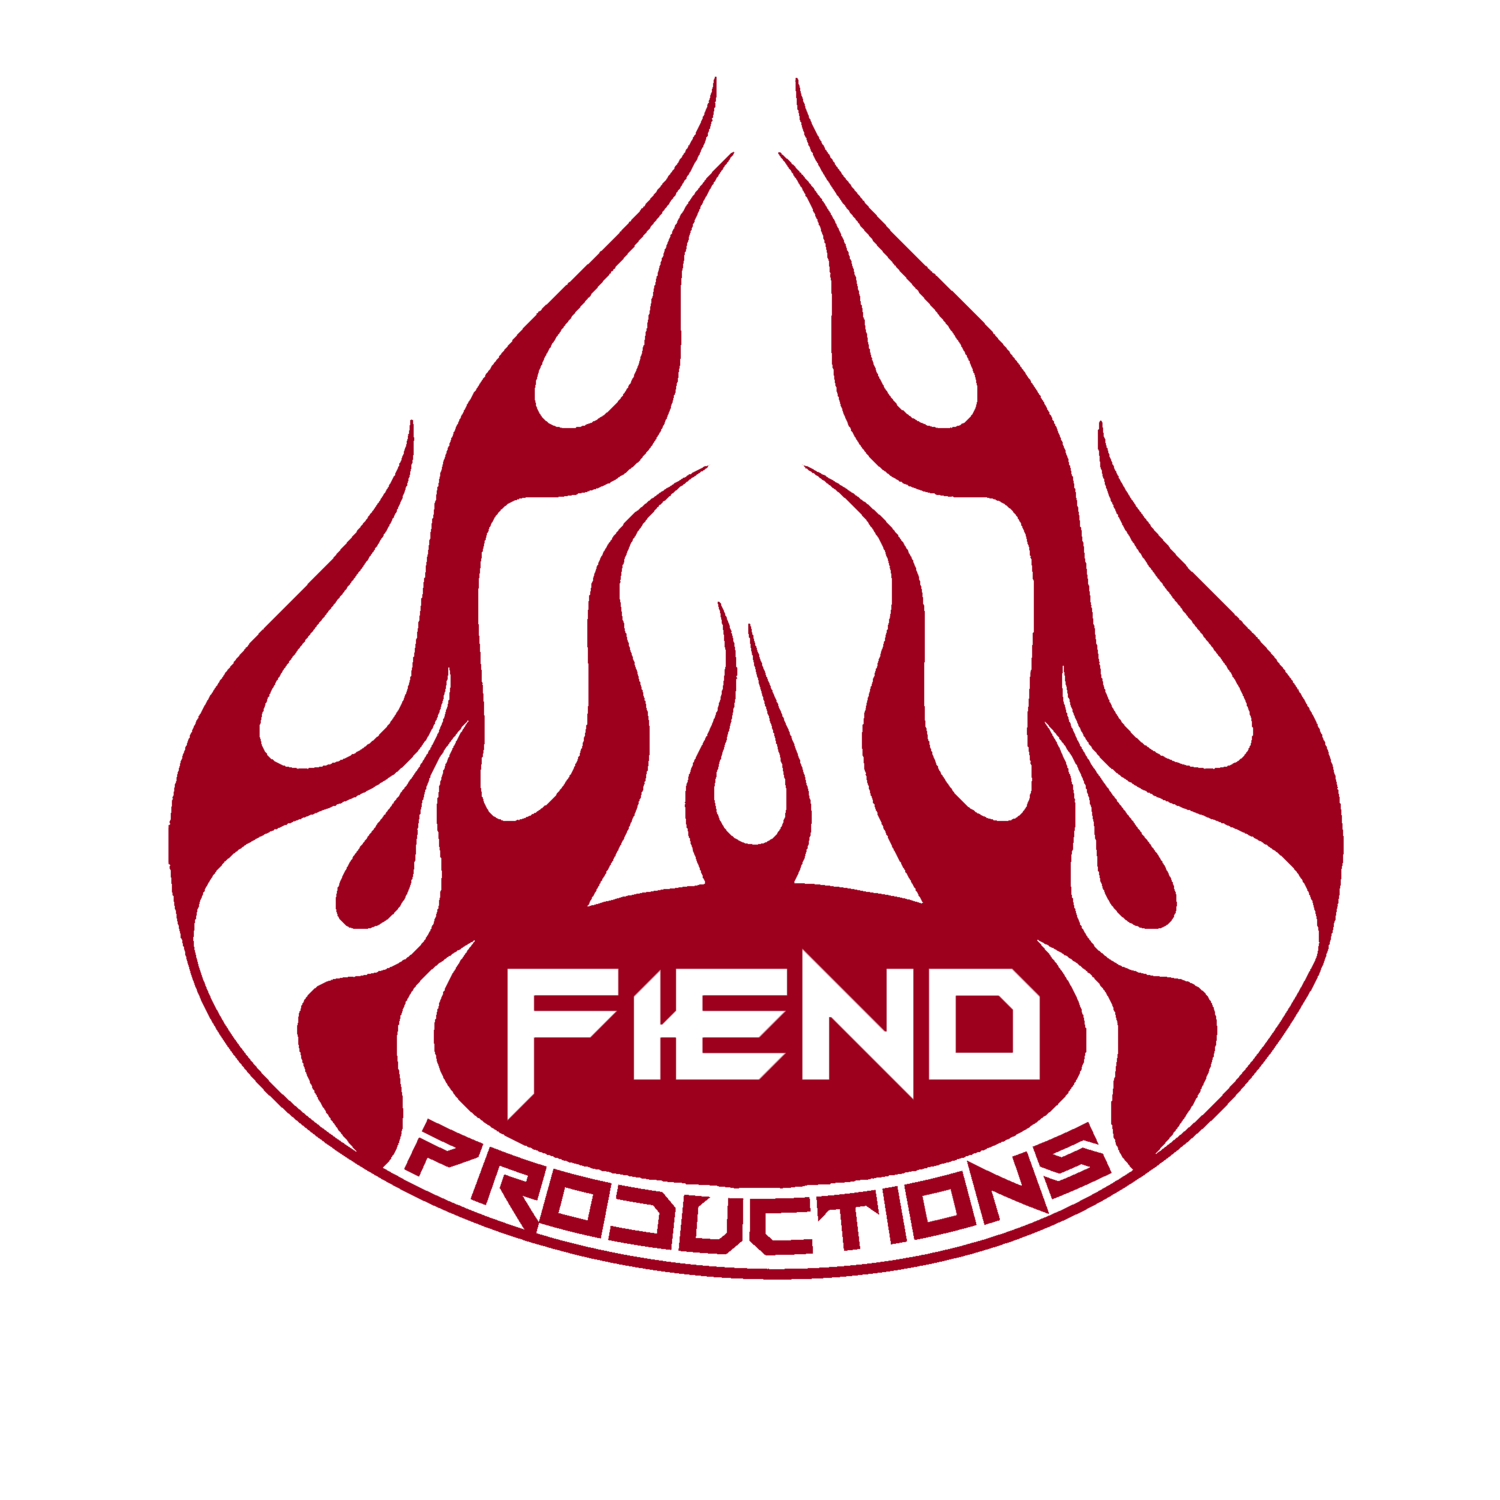 Fiend Productions Limited